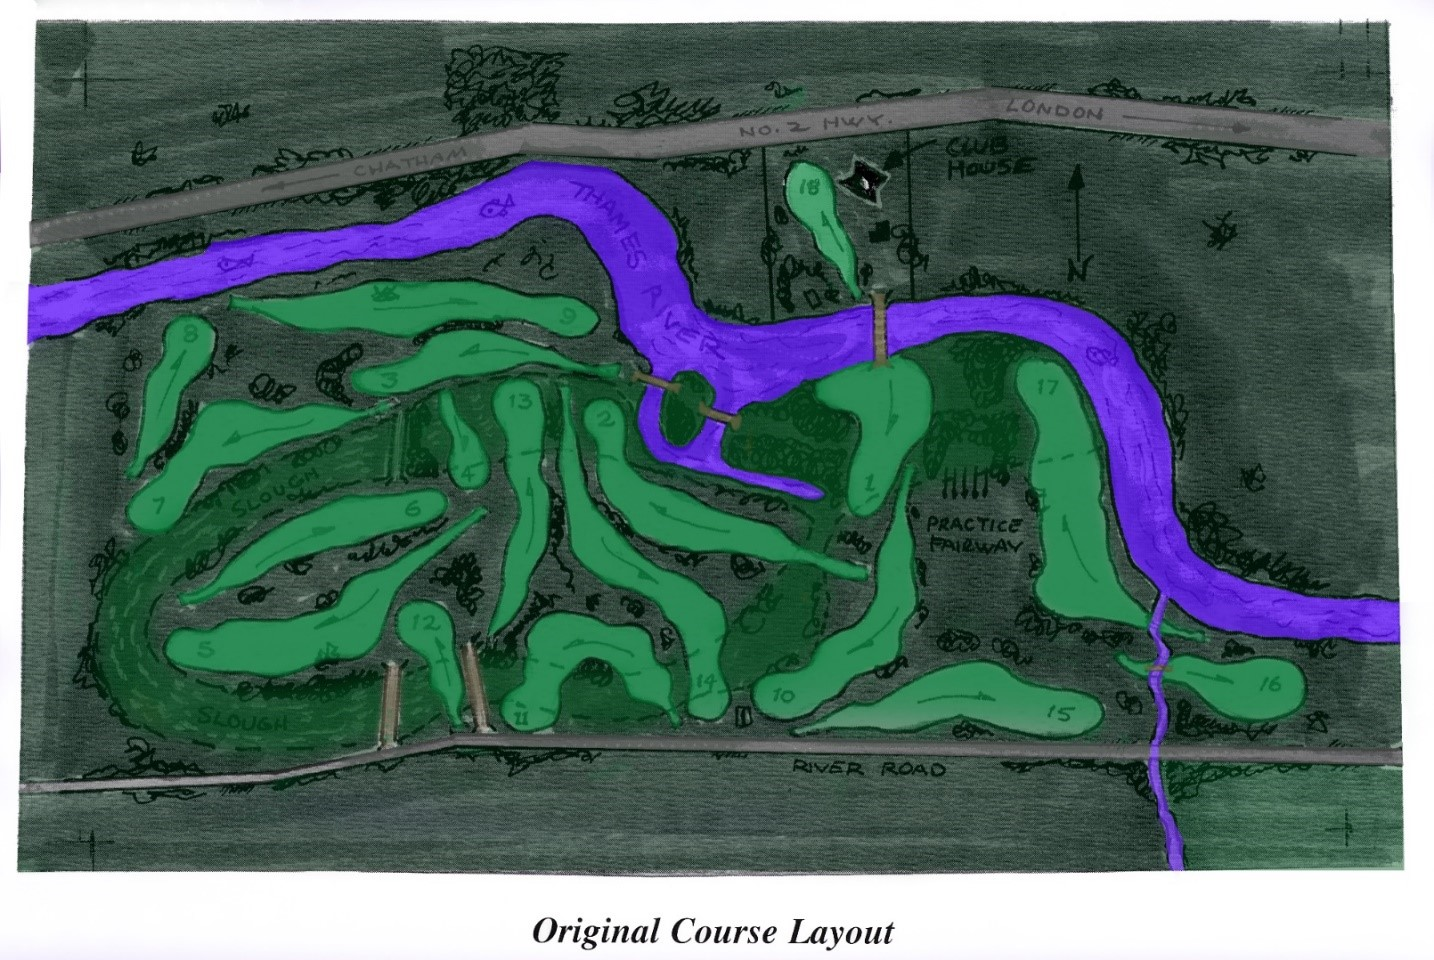 Original Course Layout